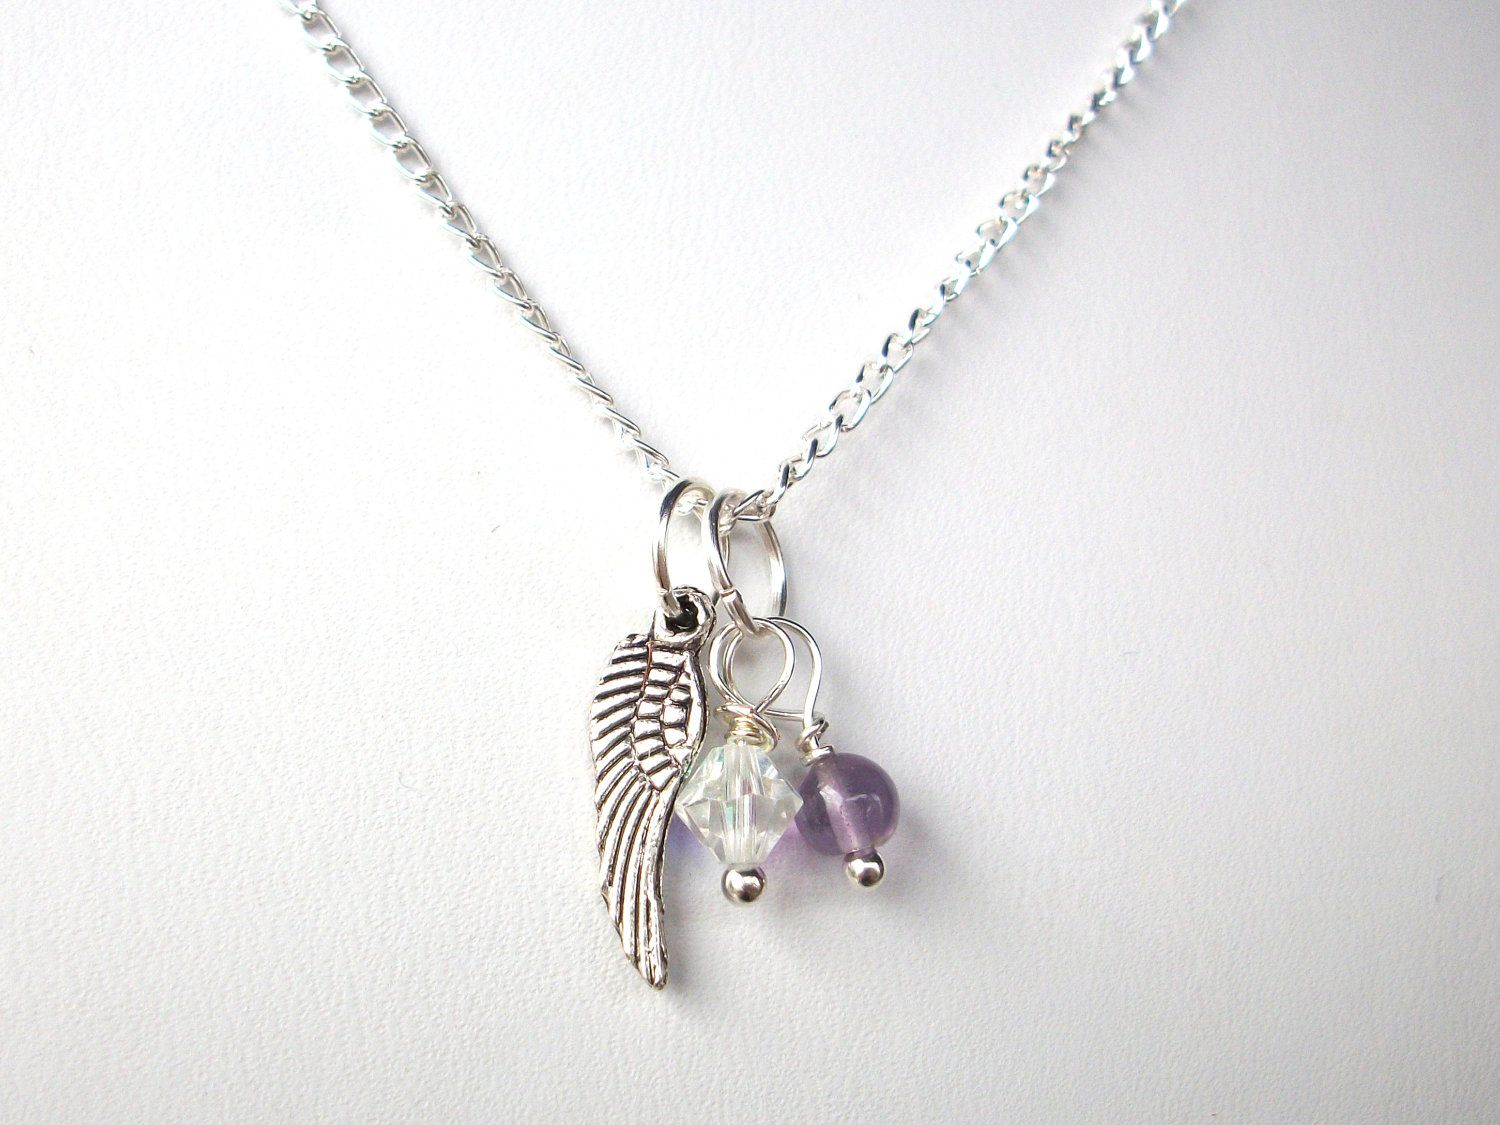 Miscarriagenecklacetwobirthstonesandsilverbystarjewels miscarriage necklace two birthstones and silver angel wing on silver chain infant twin loss remembrance aloadofball Choice Image